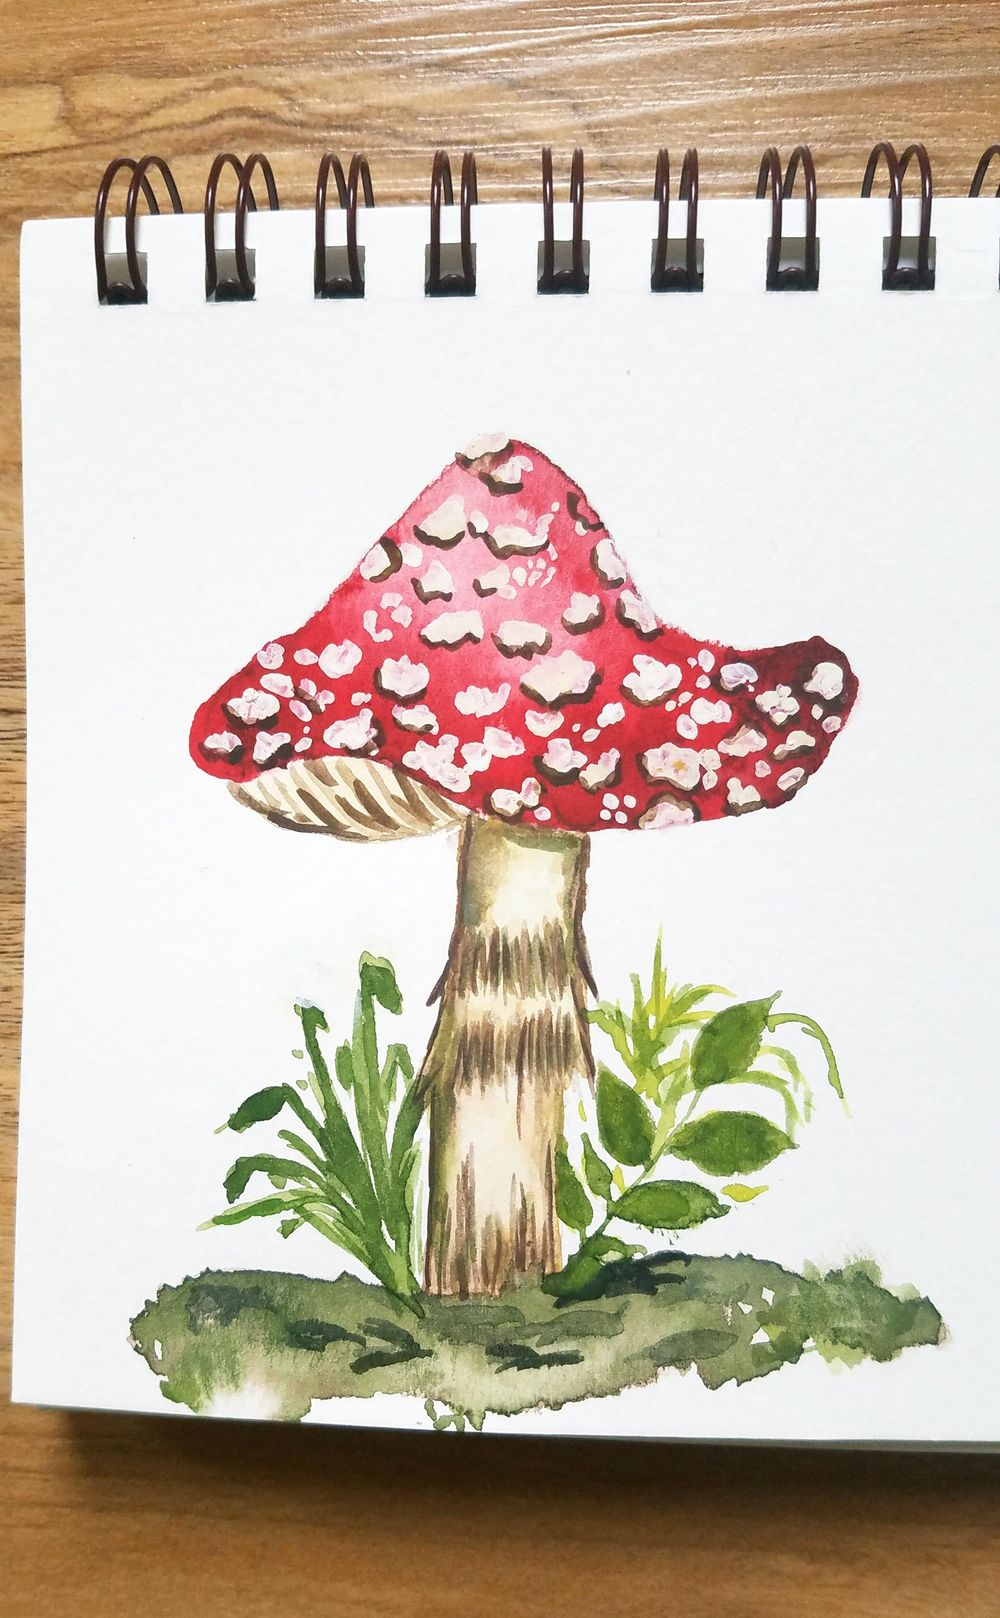 Fly Agaric Mushroom - image 1 - student project